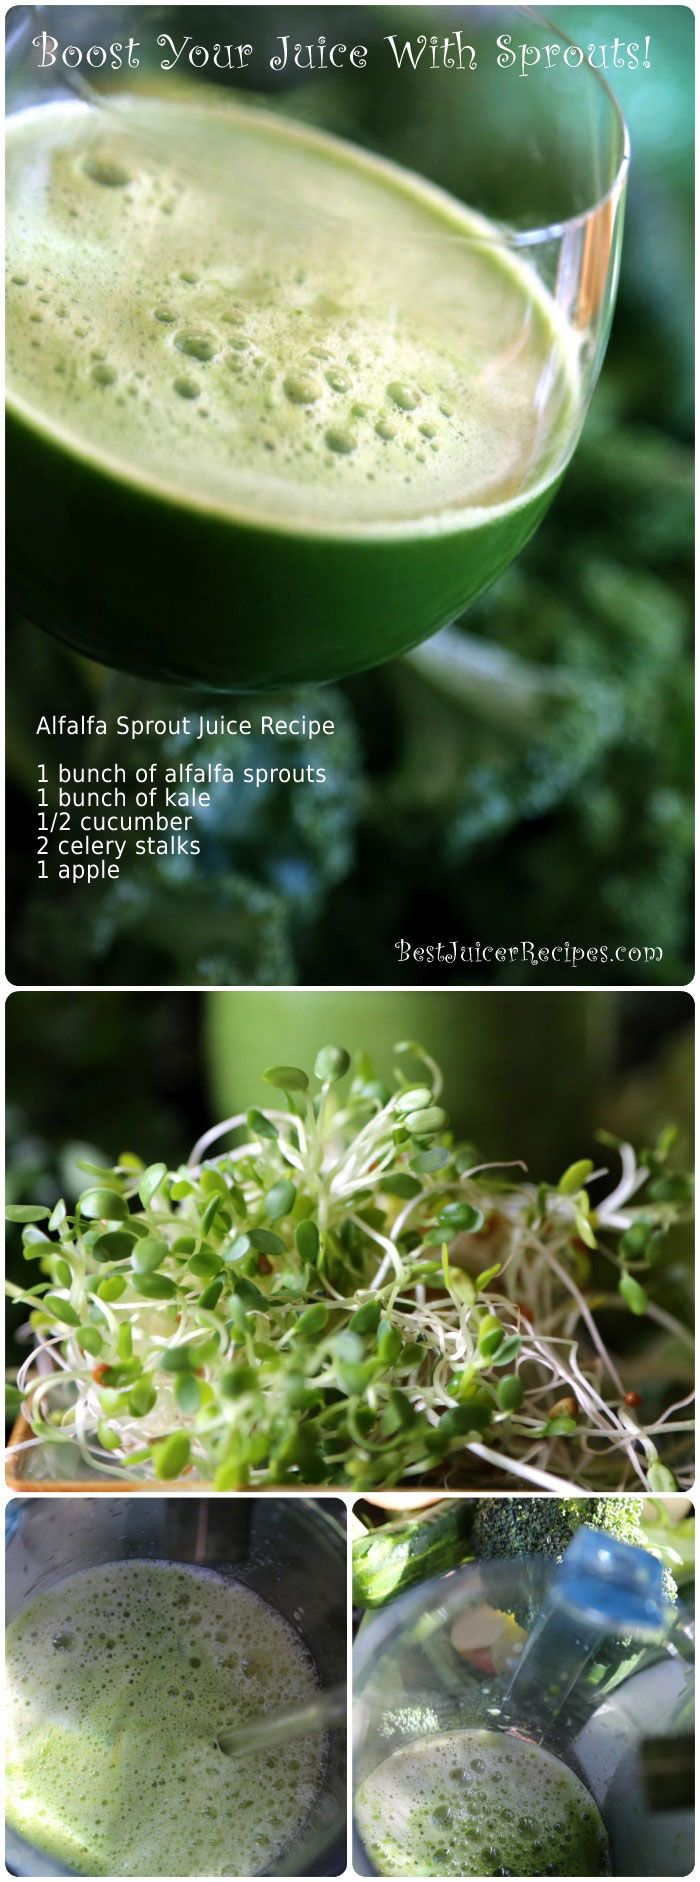 Juicing Sprouts: Alfalfa Sprout Juice Recipe